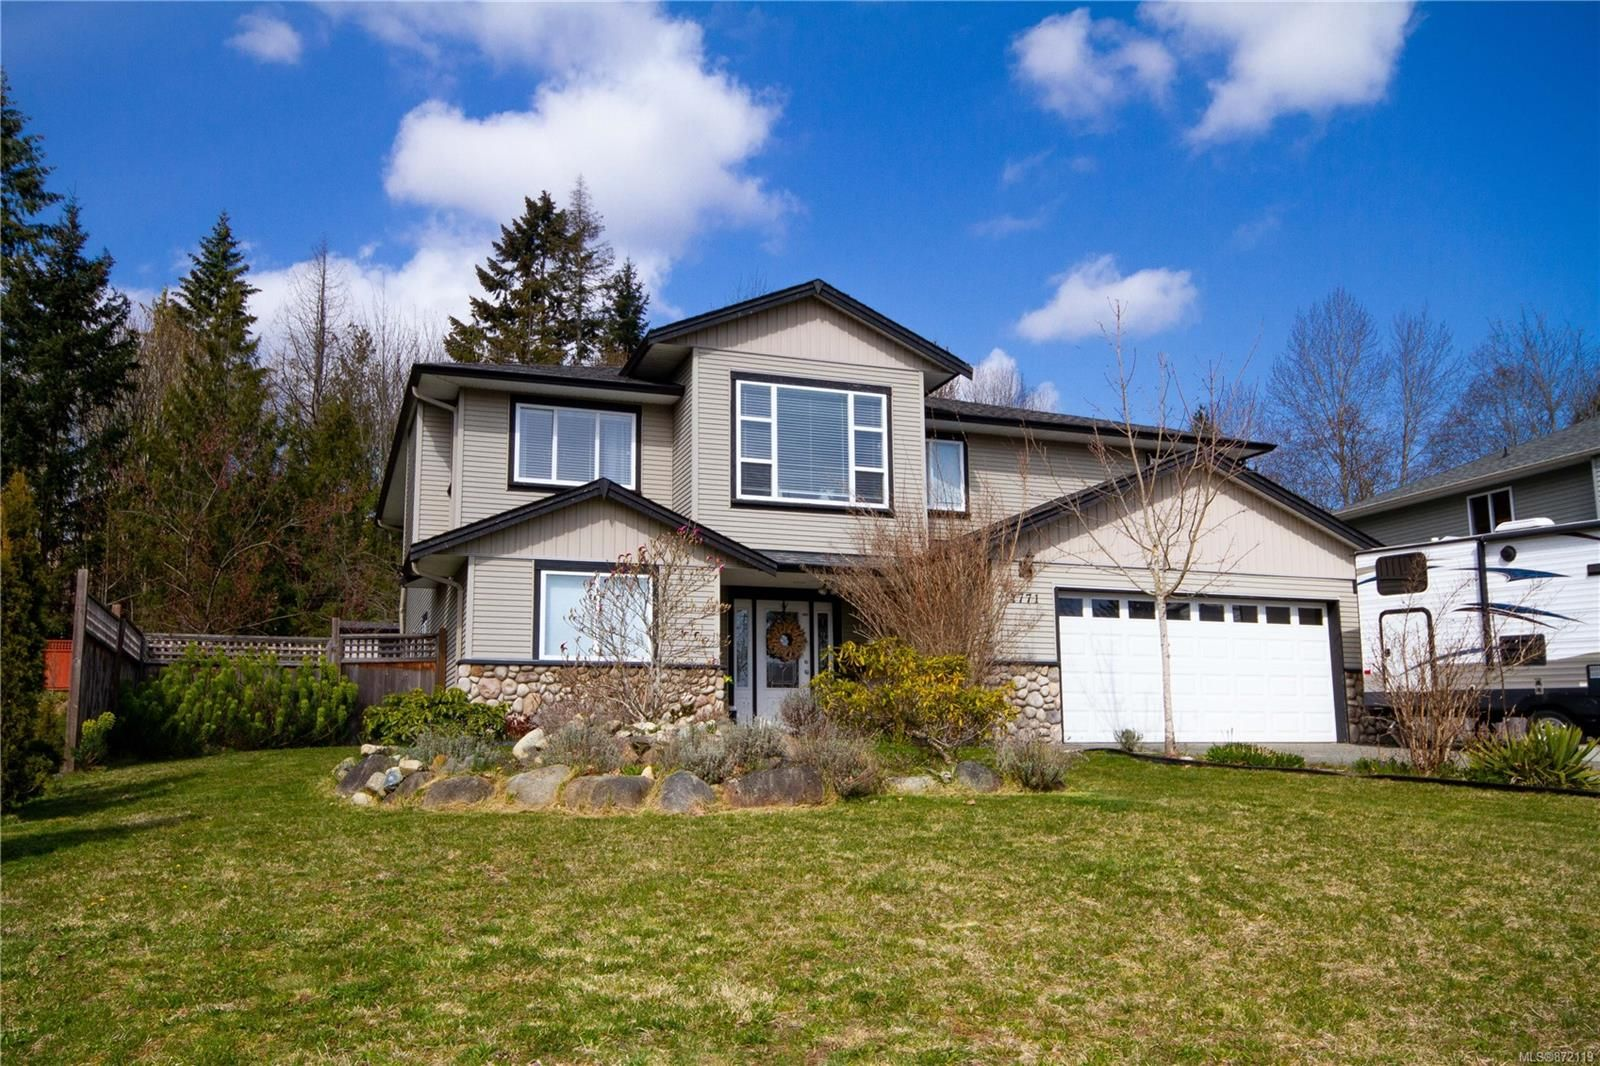 Main Photo: 1771 Lavern Rd in : Na Chase River House for sale (Nanaimo)  : MLS®# 872119